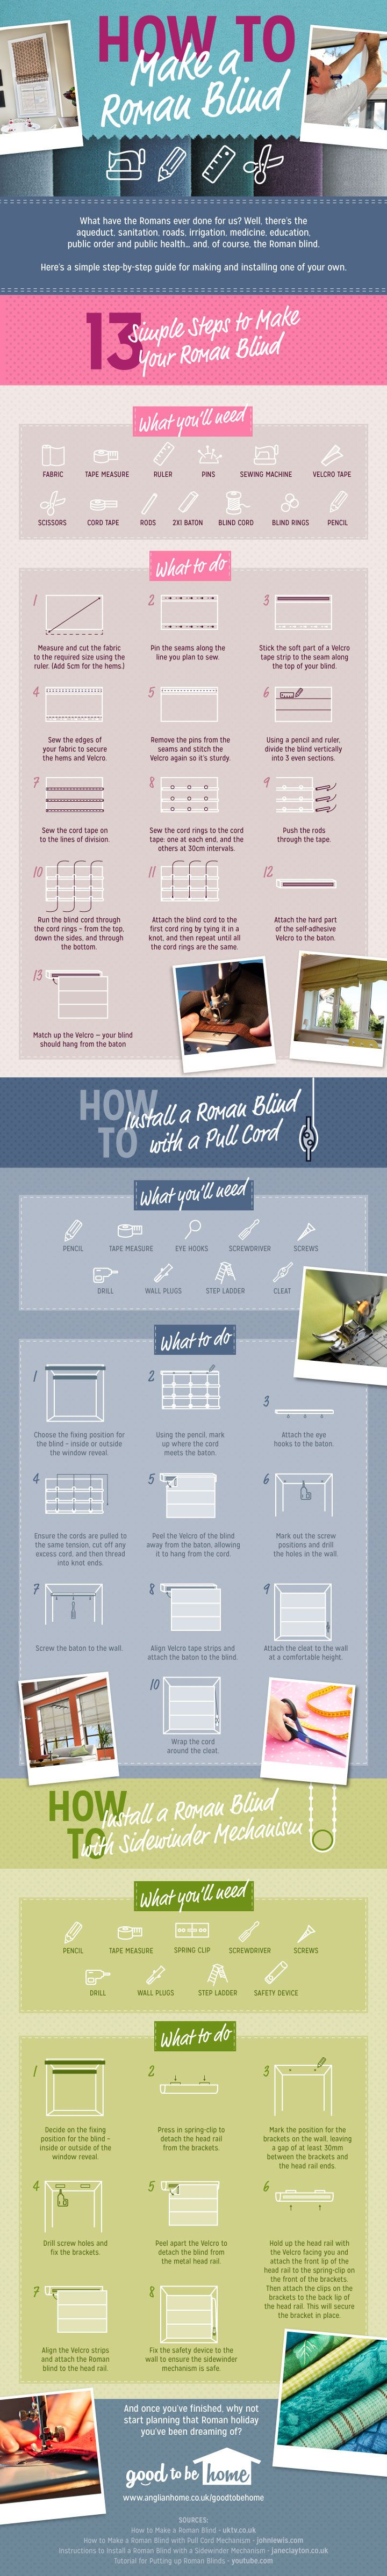 How to Make and Install a Roman Blind  [infographic] by @anglianhome via @Remodelaholic #AllThingsWindows #GTBHblinds